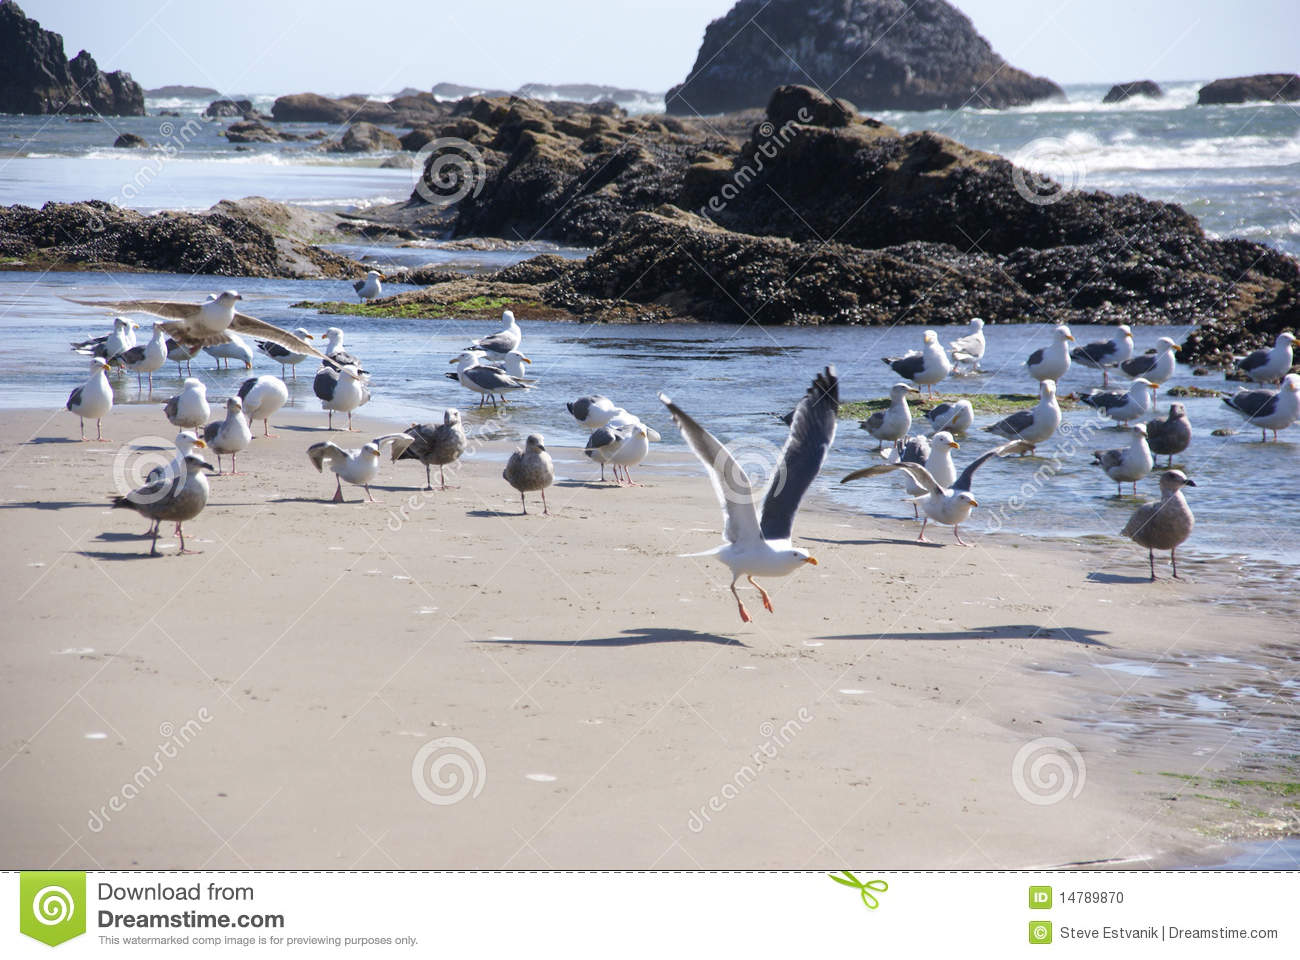 Flock Of Seagulls On Beach Stock Photo - Image: 14789870